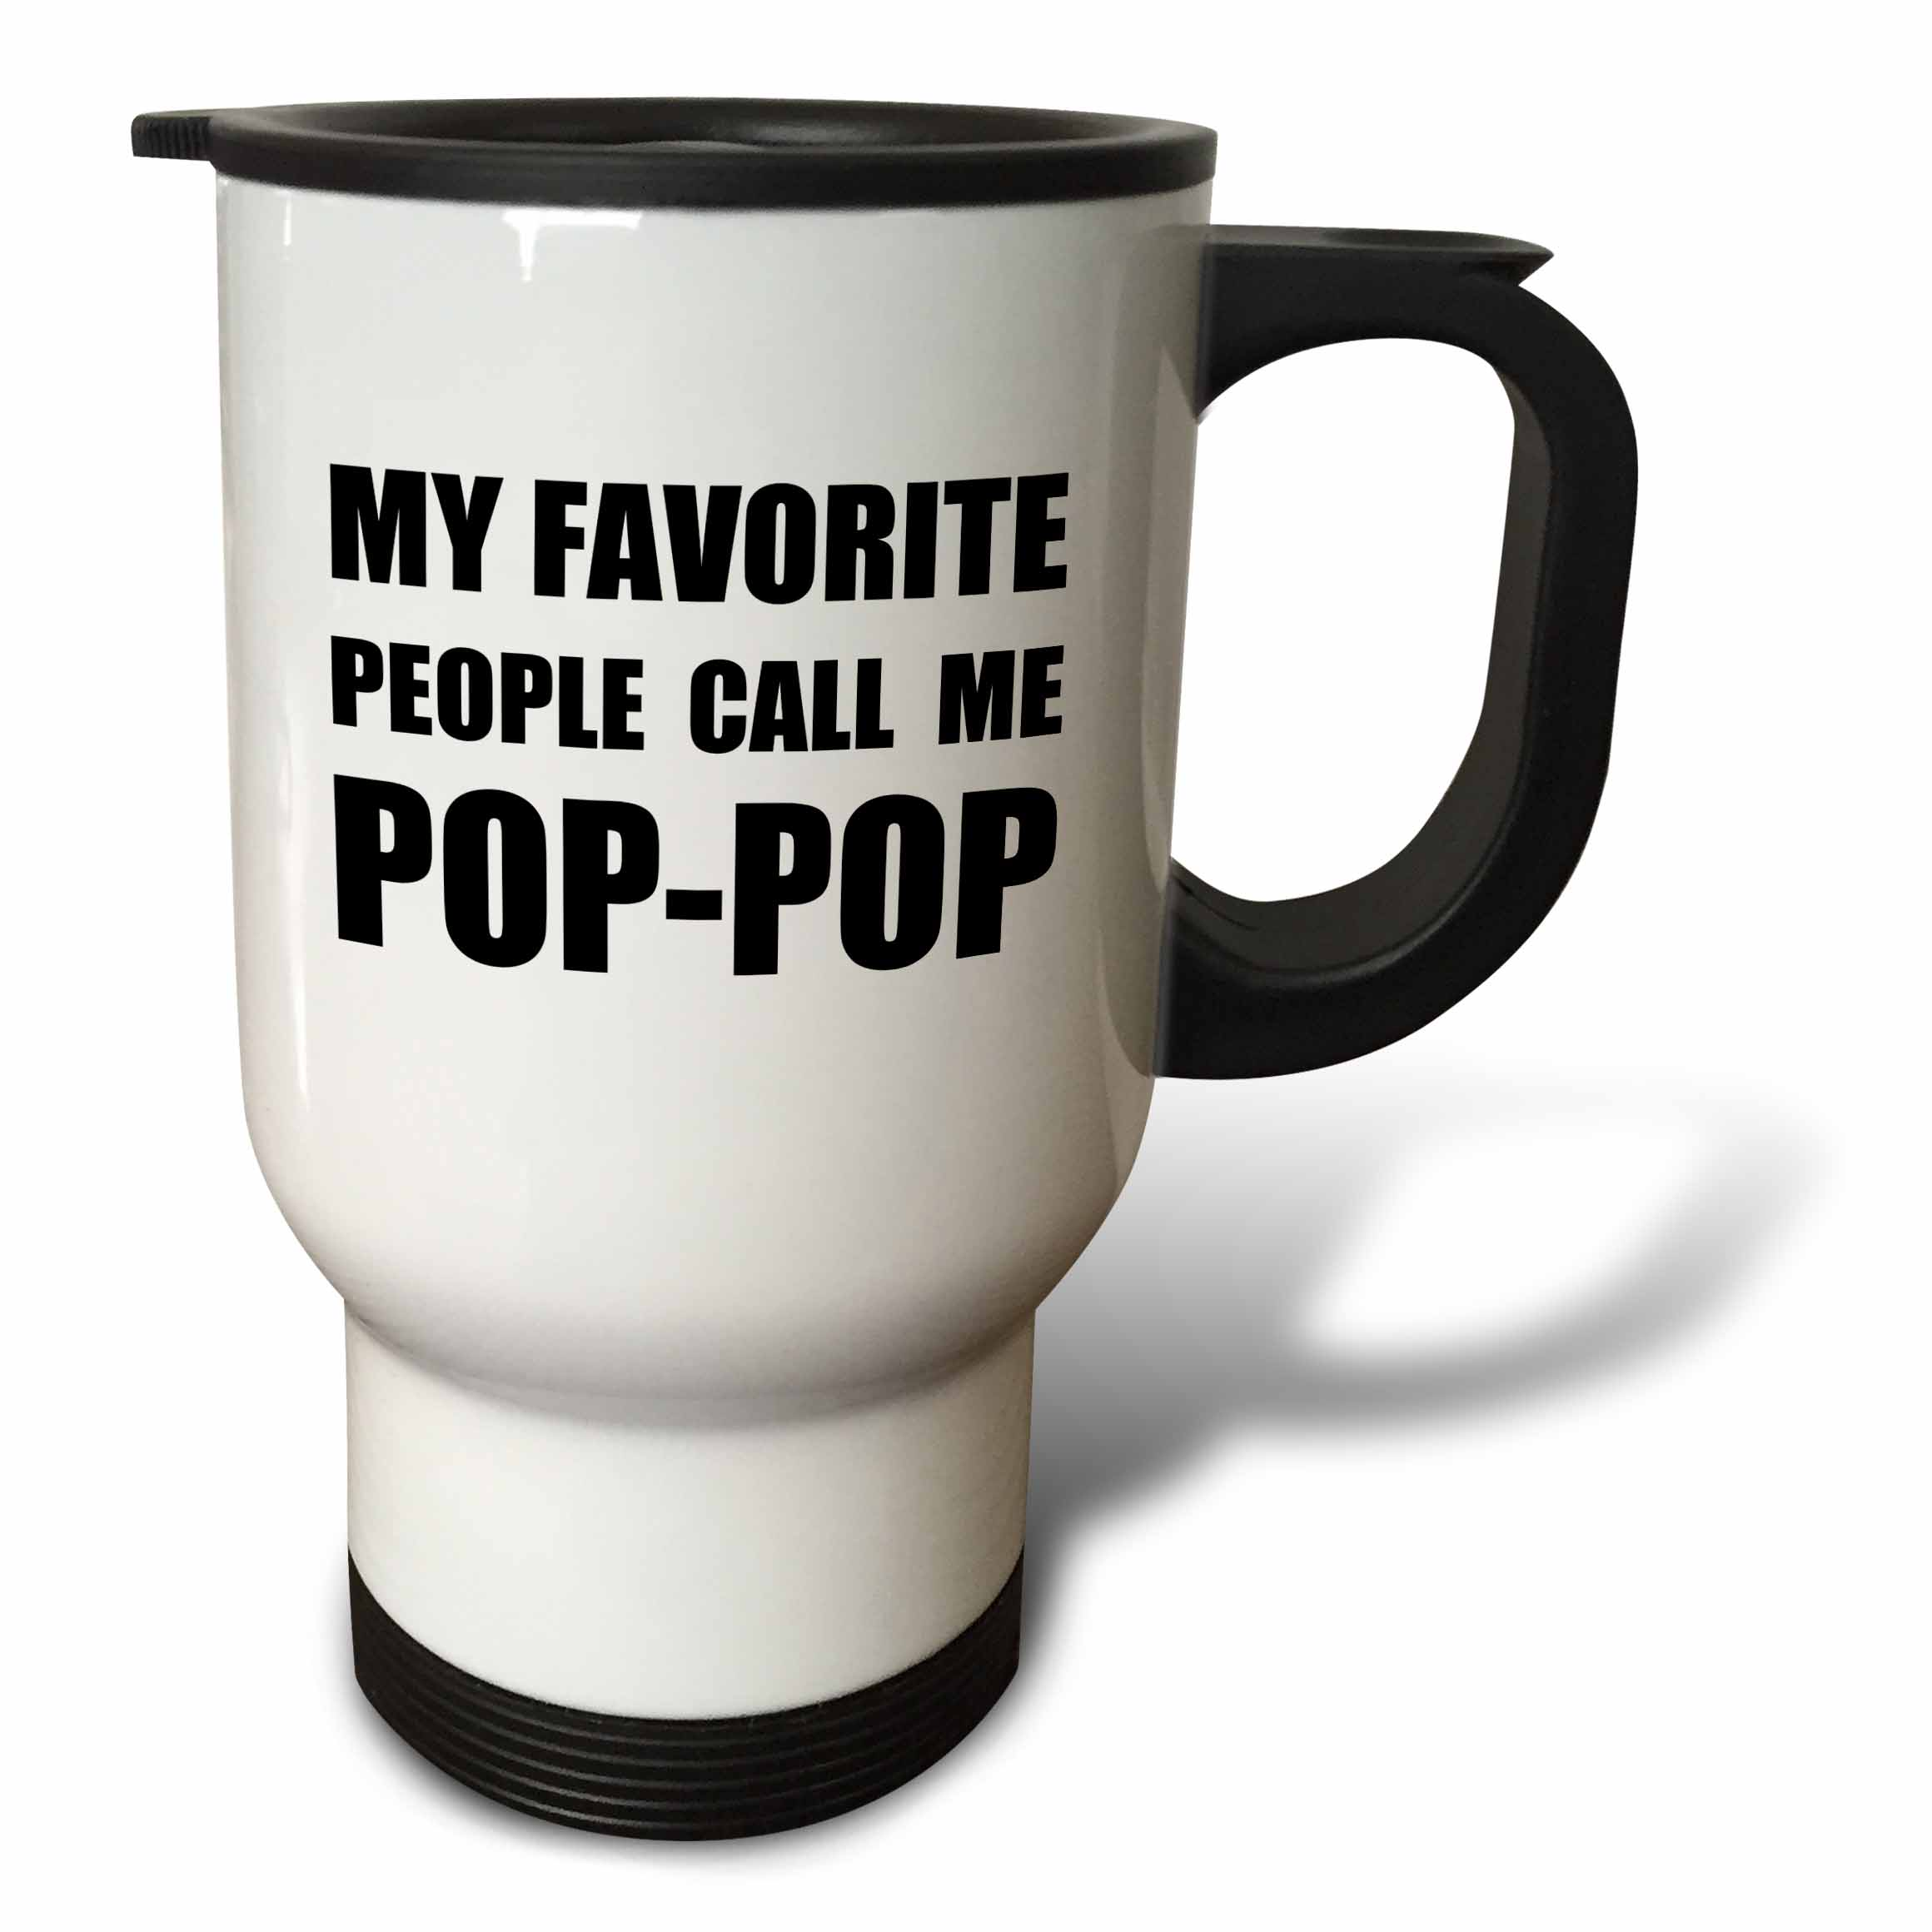 3dRose My Favorite People Call Me Pop Pop fun text design for PopPop grandpa - Travel Mug, 14-ounce, Stainless Steel